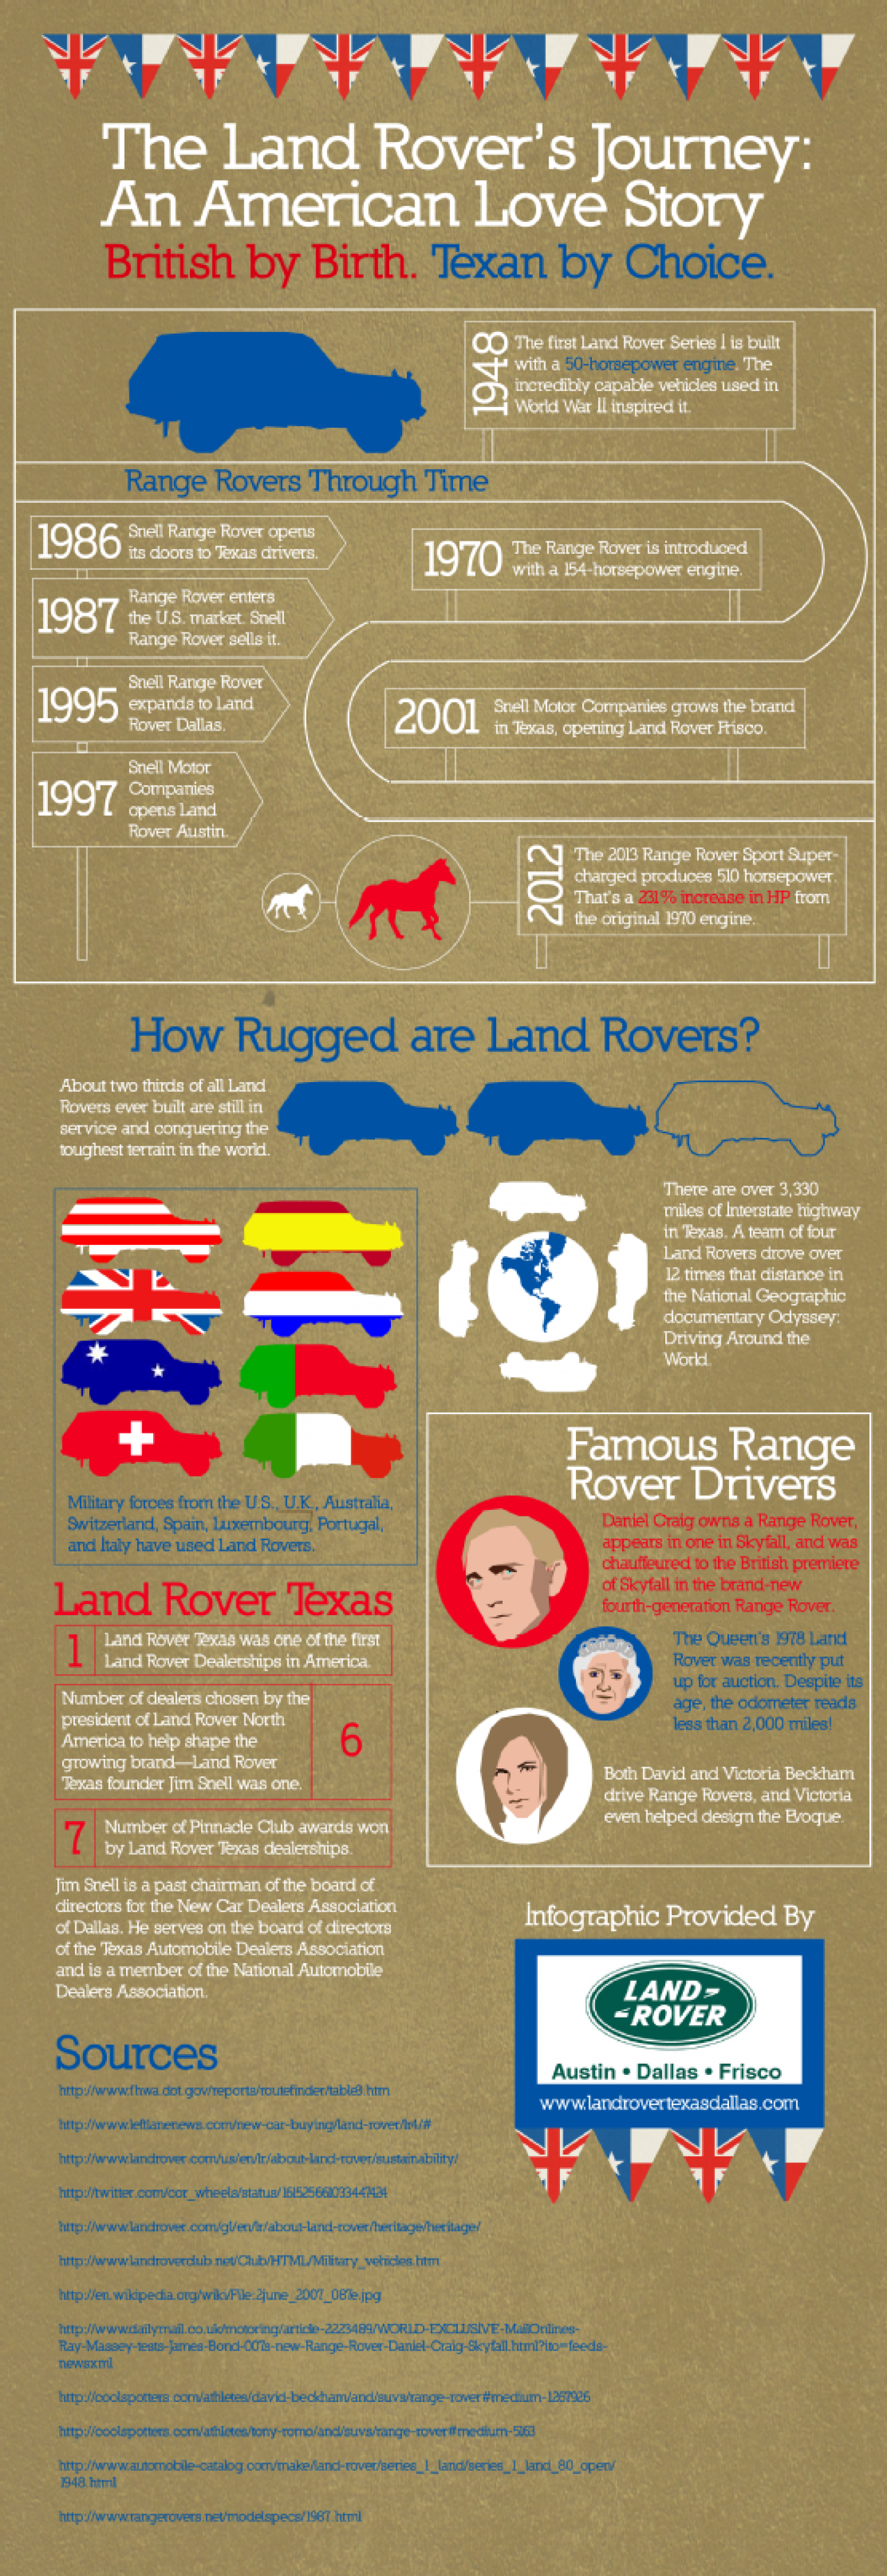 The Land Rover's Journey: An American Love Story  Infographic